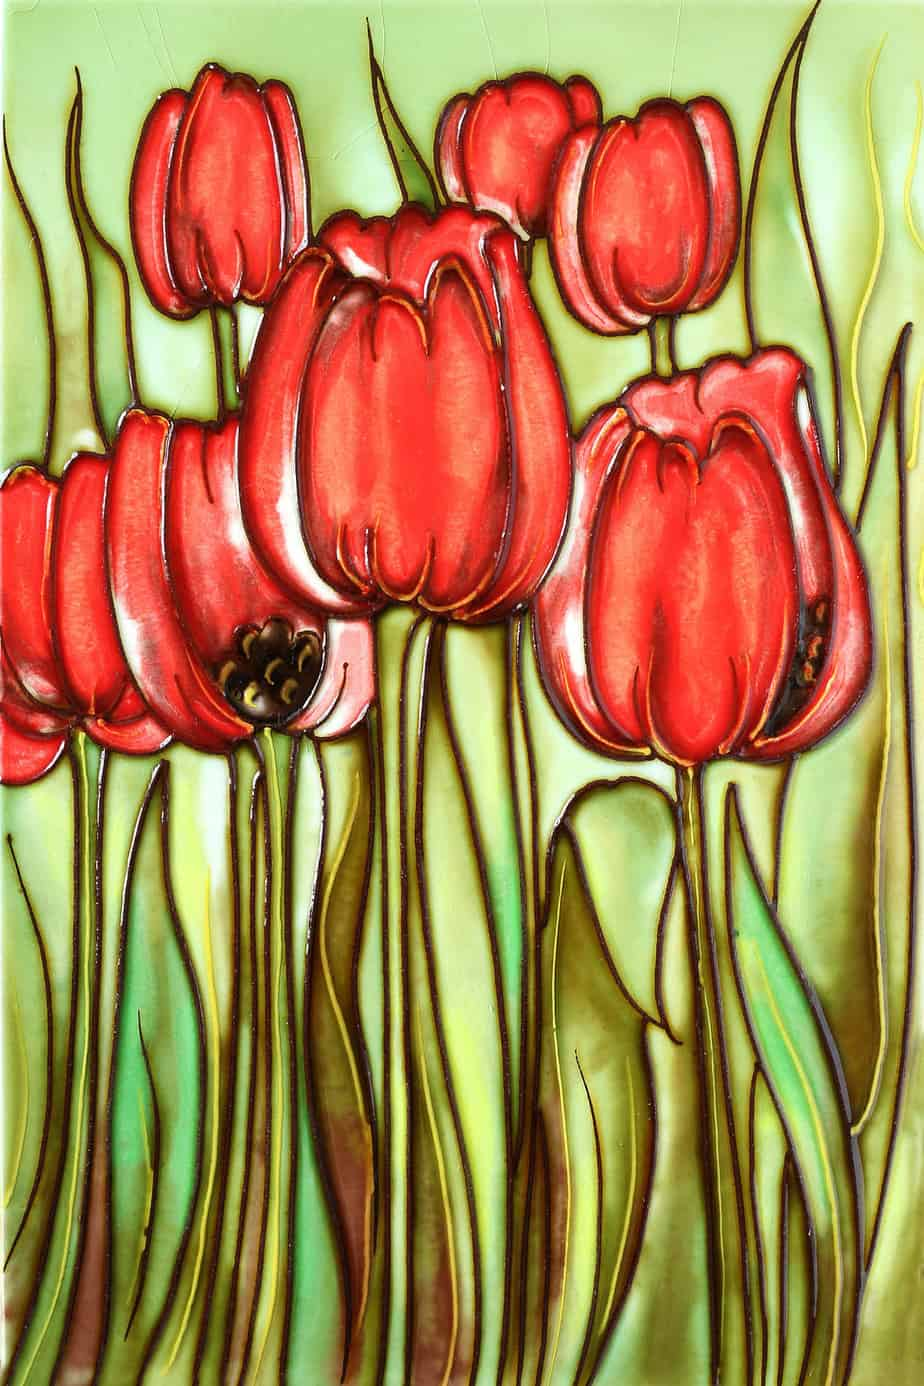 Long Stem Tulips 8×12 (171035)